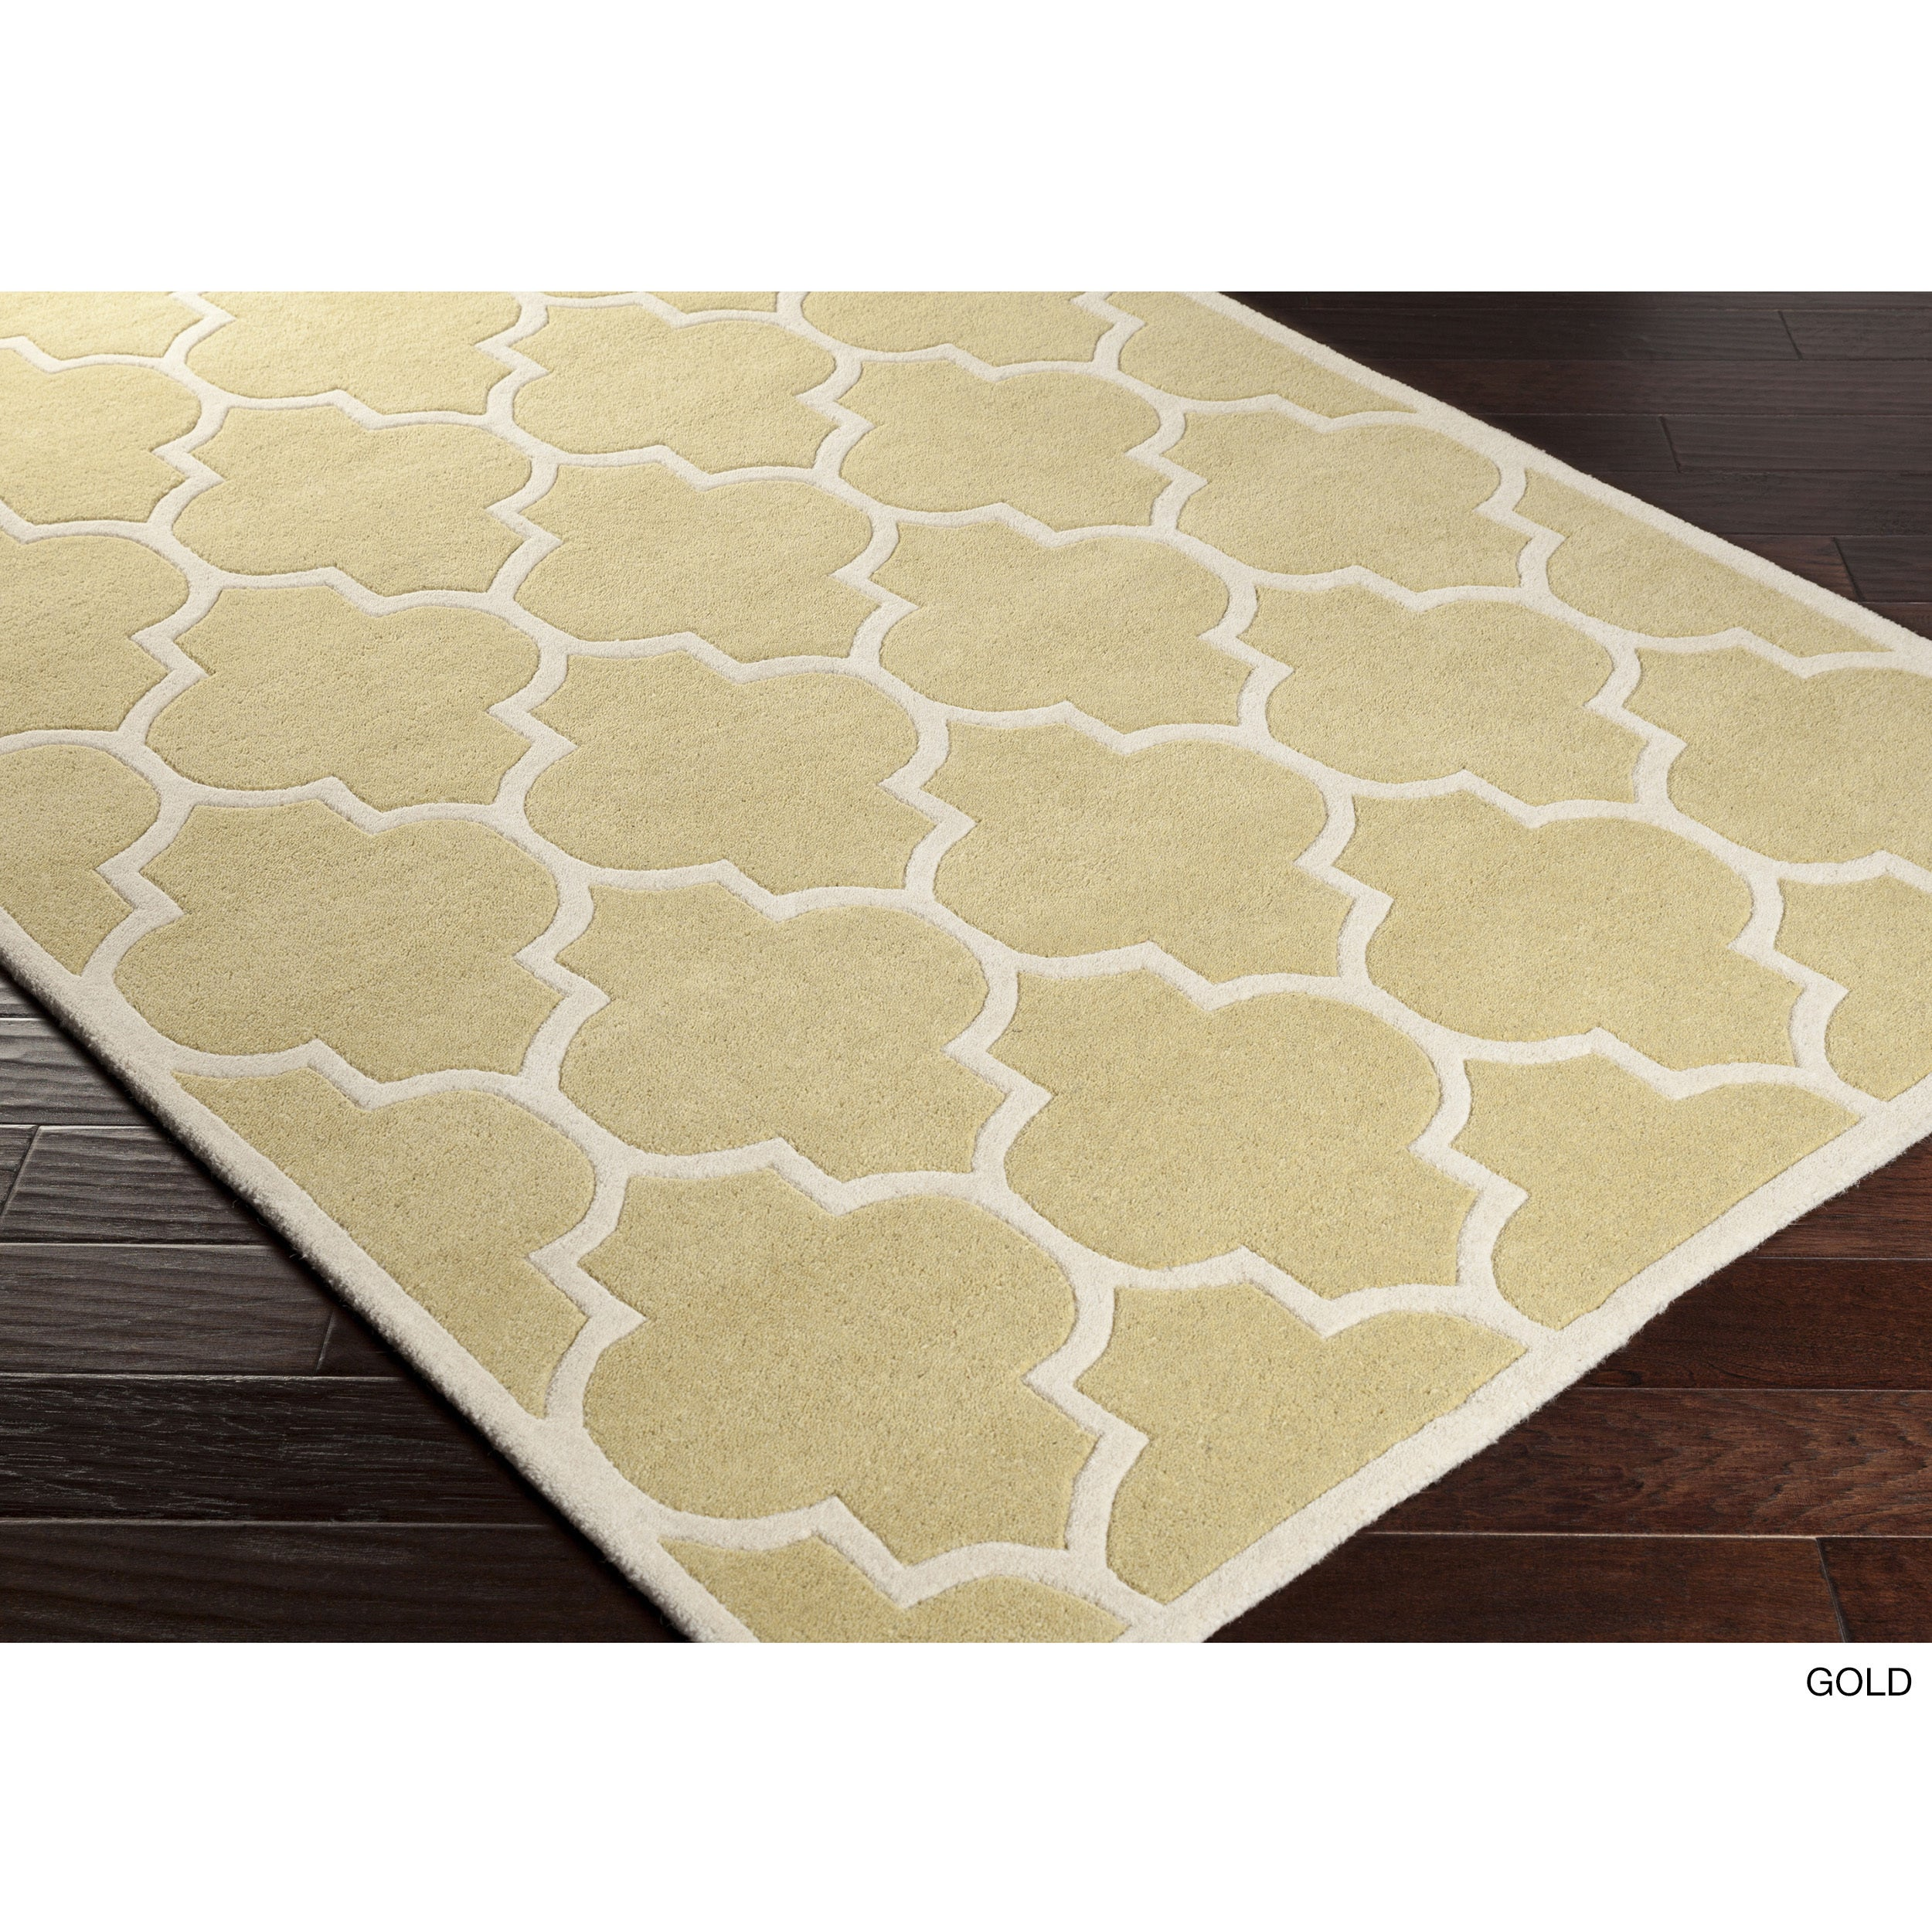 Yellow 6 X 9 Modern Contemporary Area Rugs Online At Our Best Deals